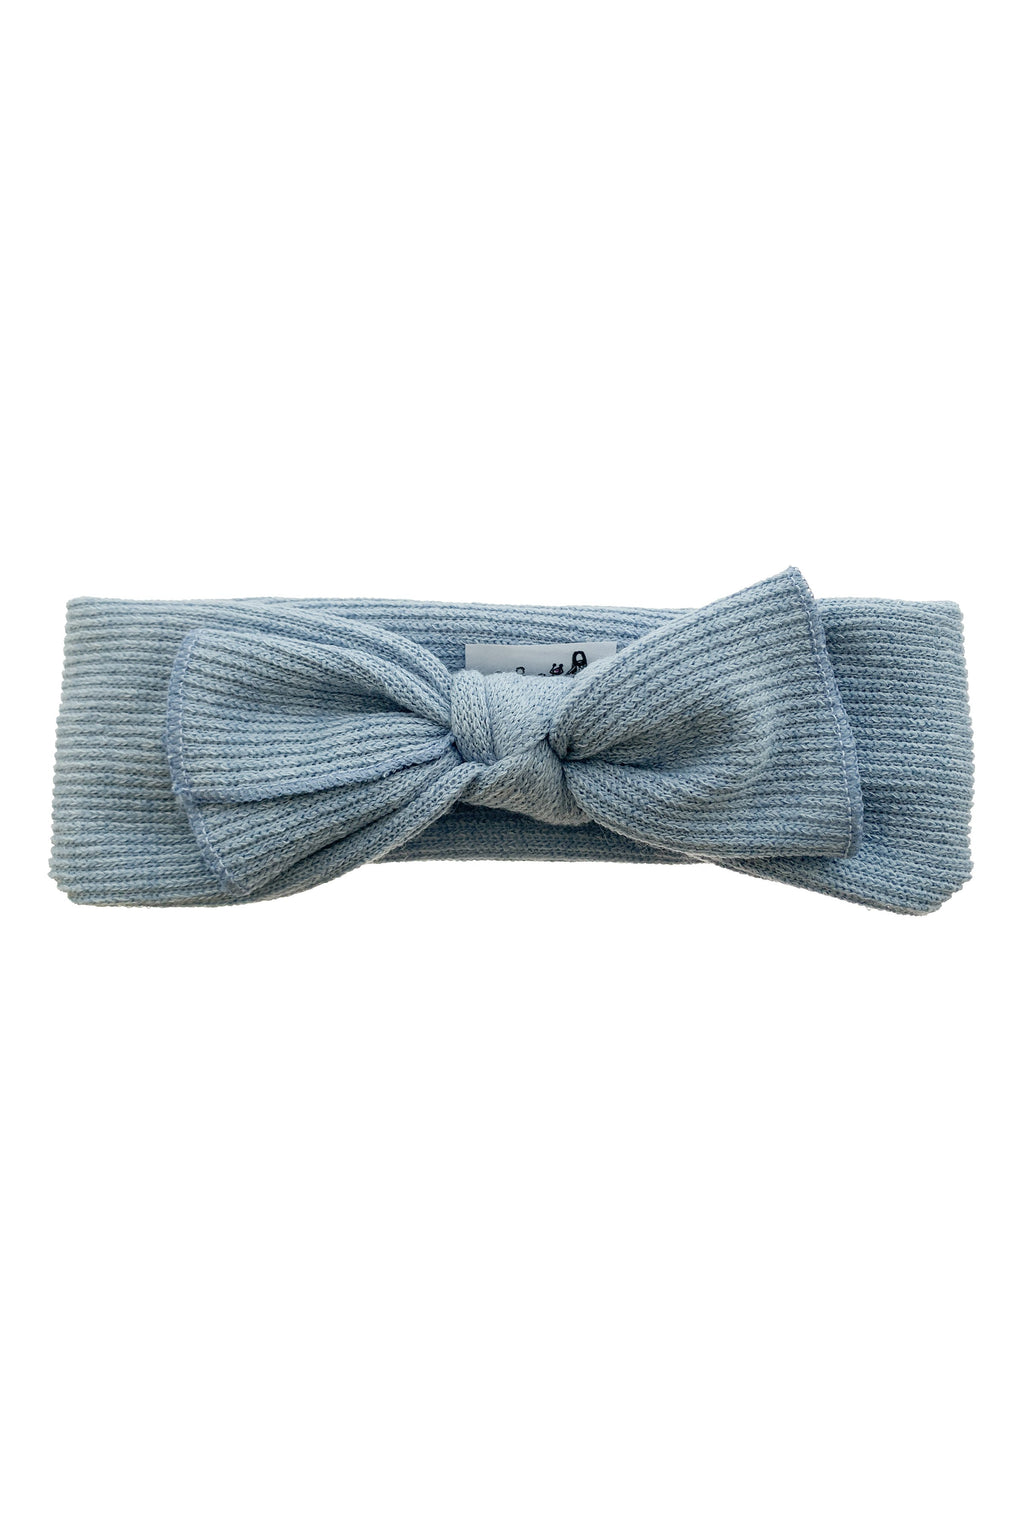 Knitted Bow Wrap - Blue - PROJECT 6, modest fashion